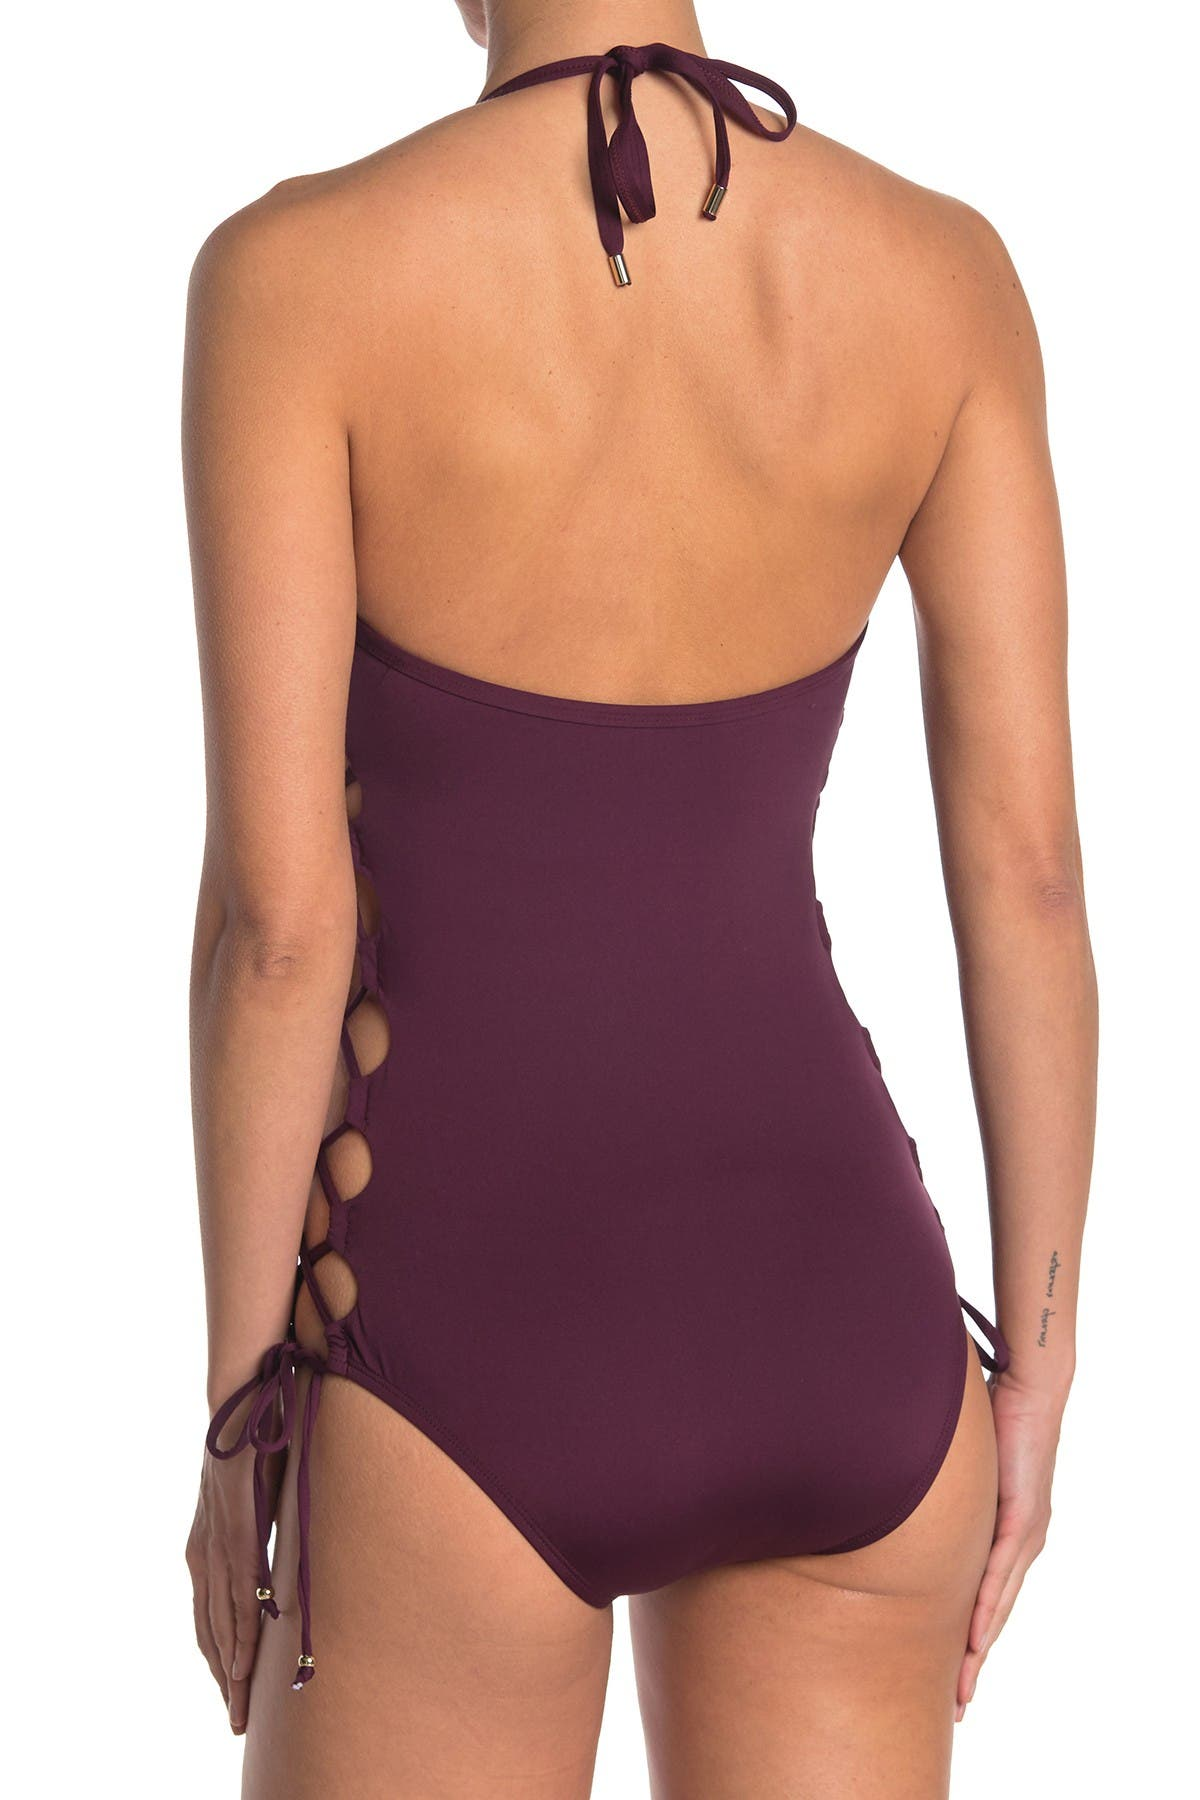 Image of Laundry By Shelli Segal Plunge Tie Up One Piece Swimsuit